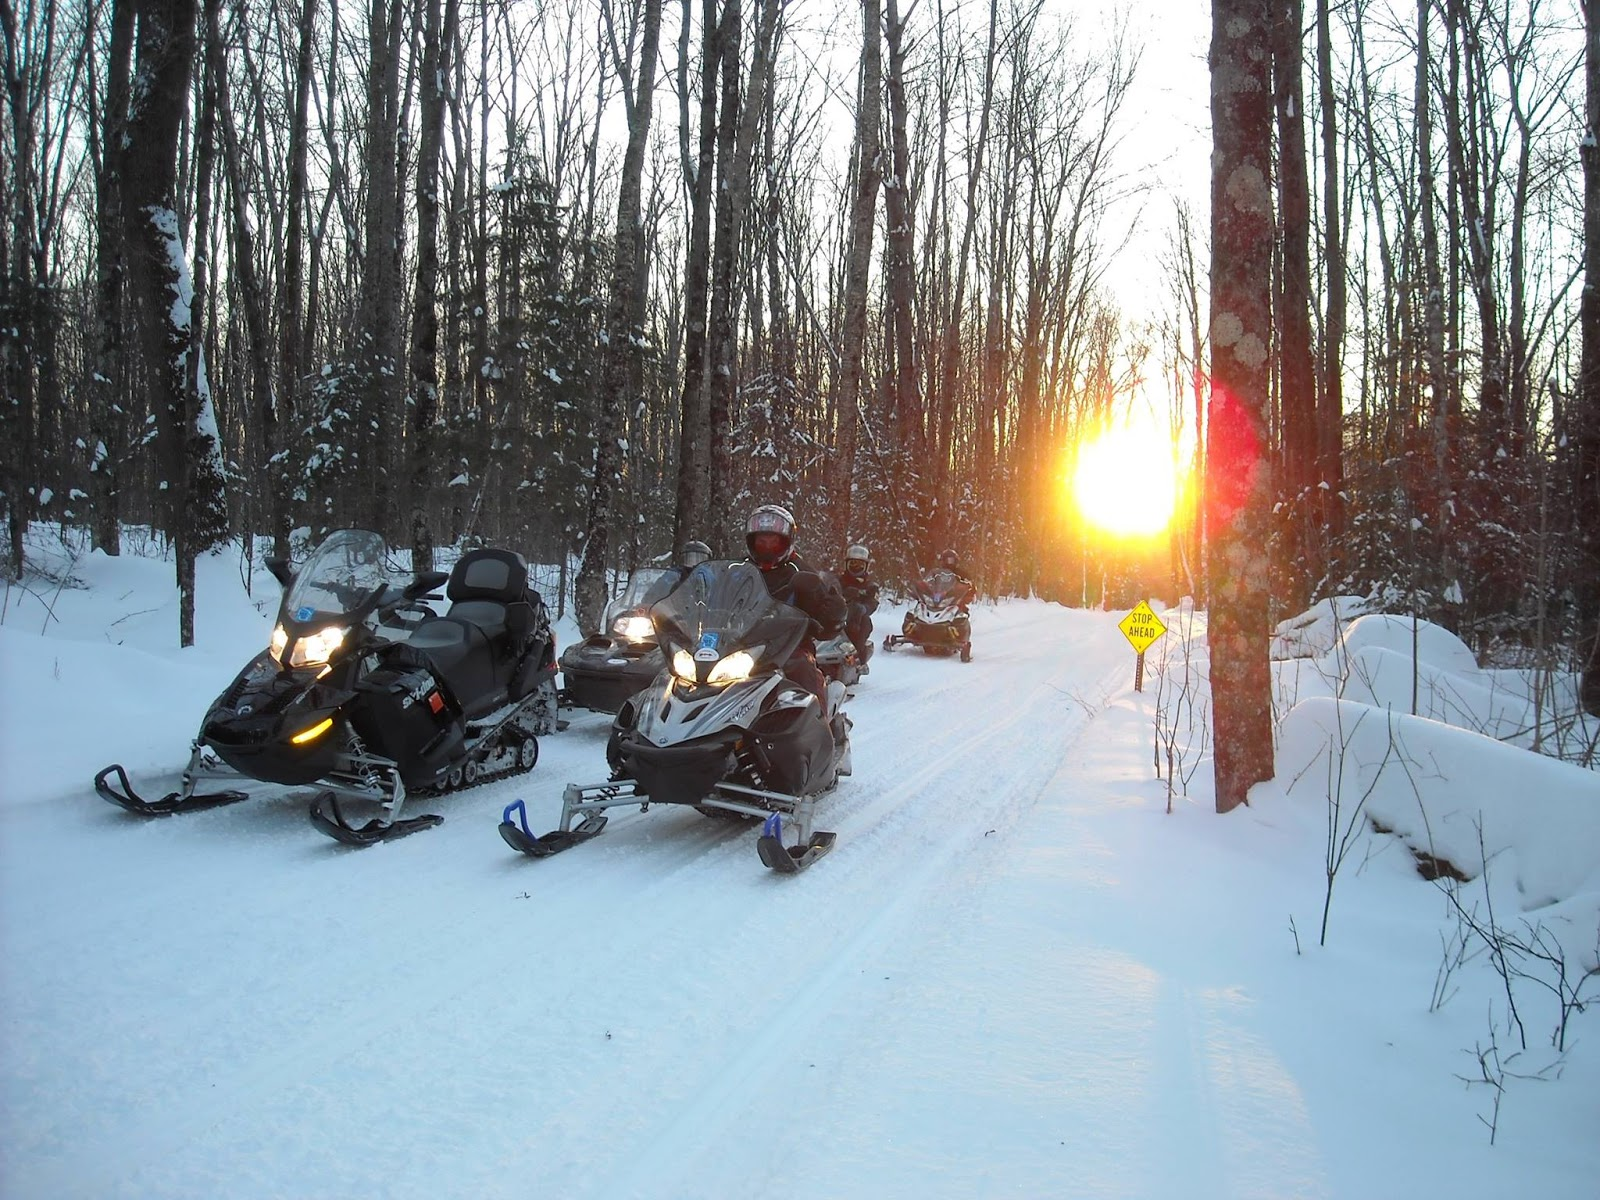 Snowmobile Bogs When You Give It Gas